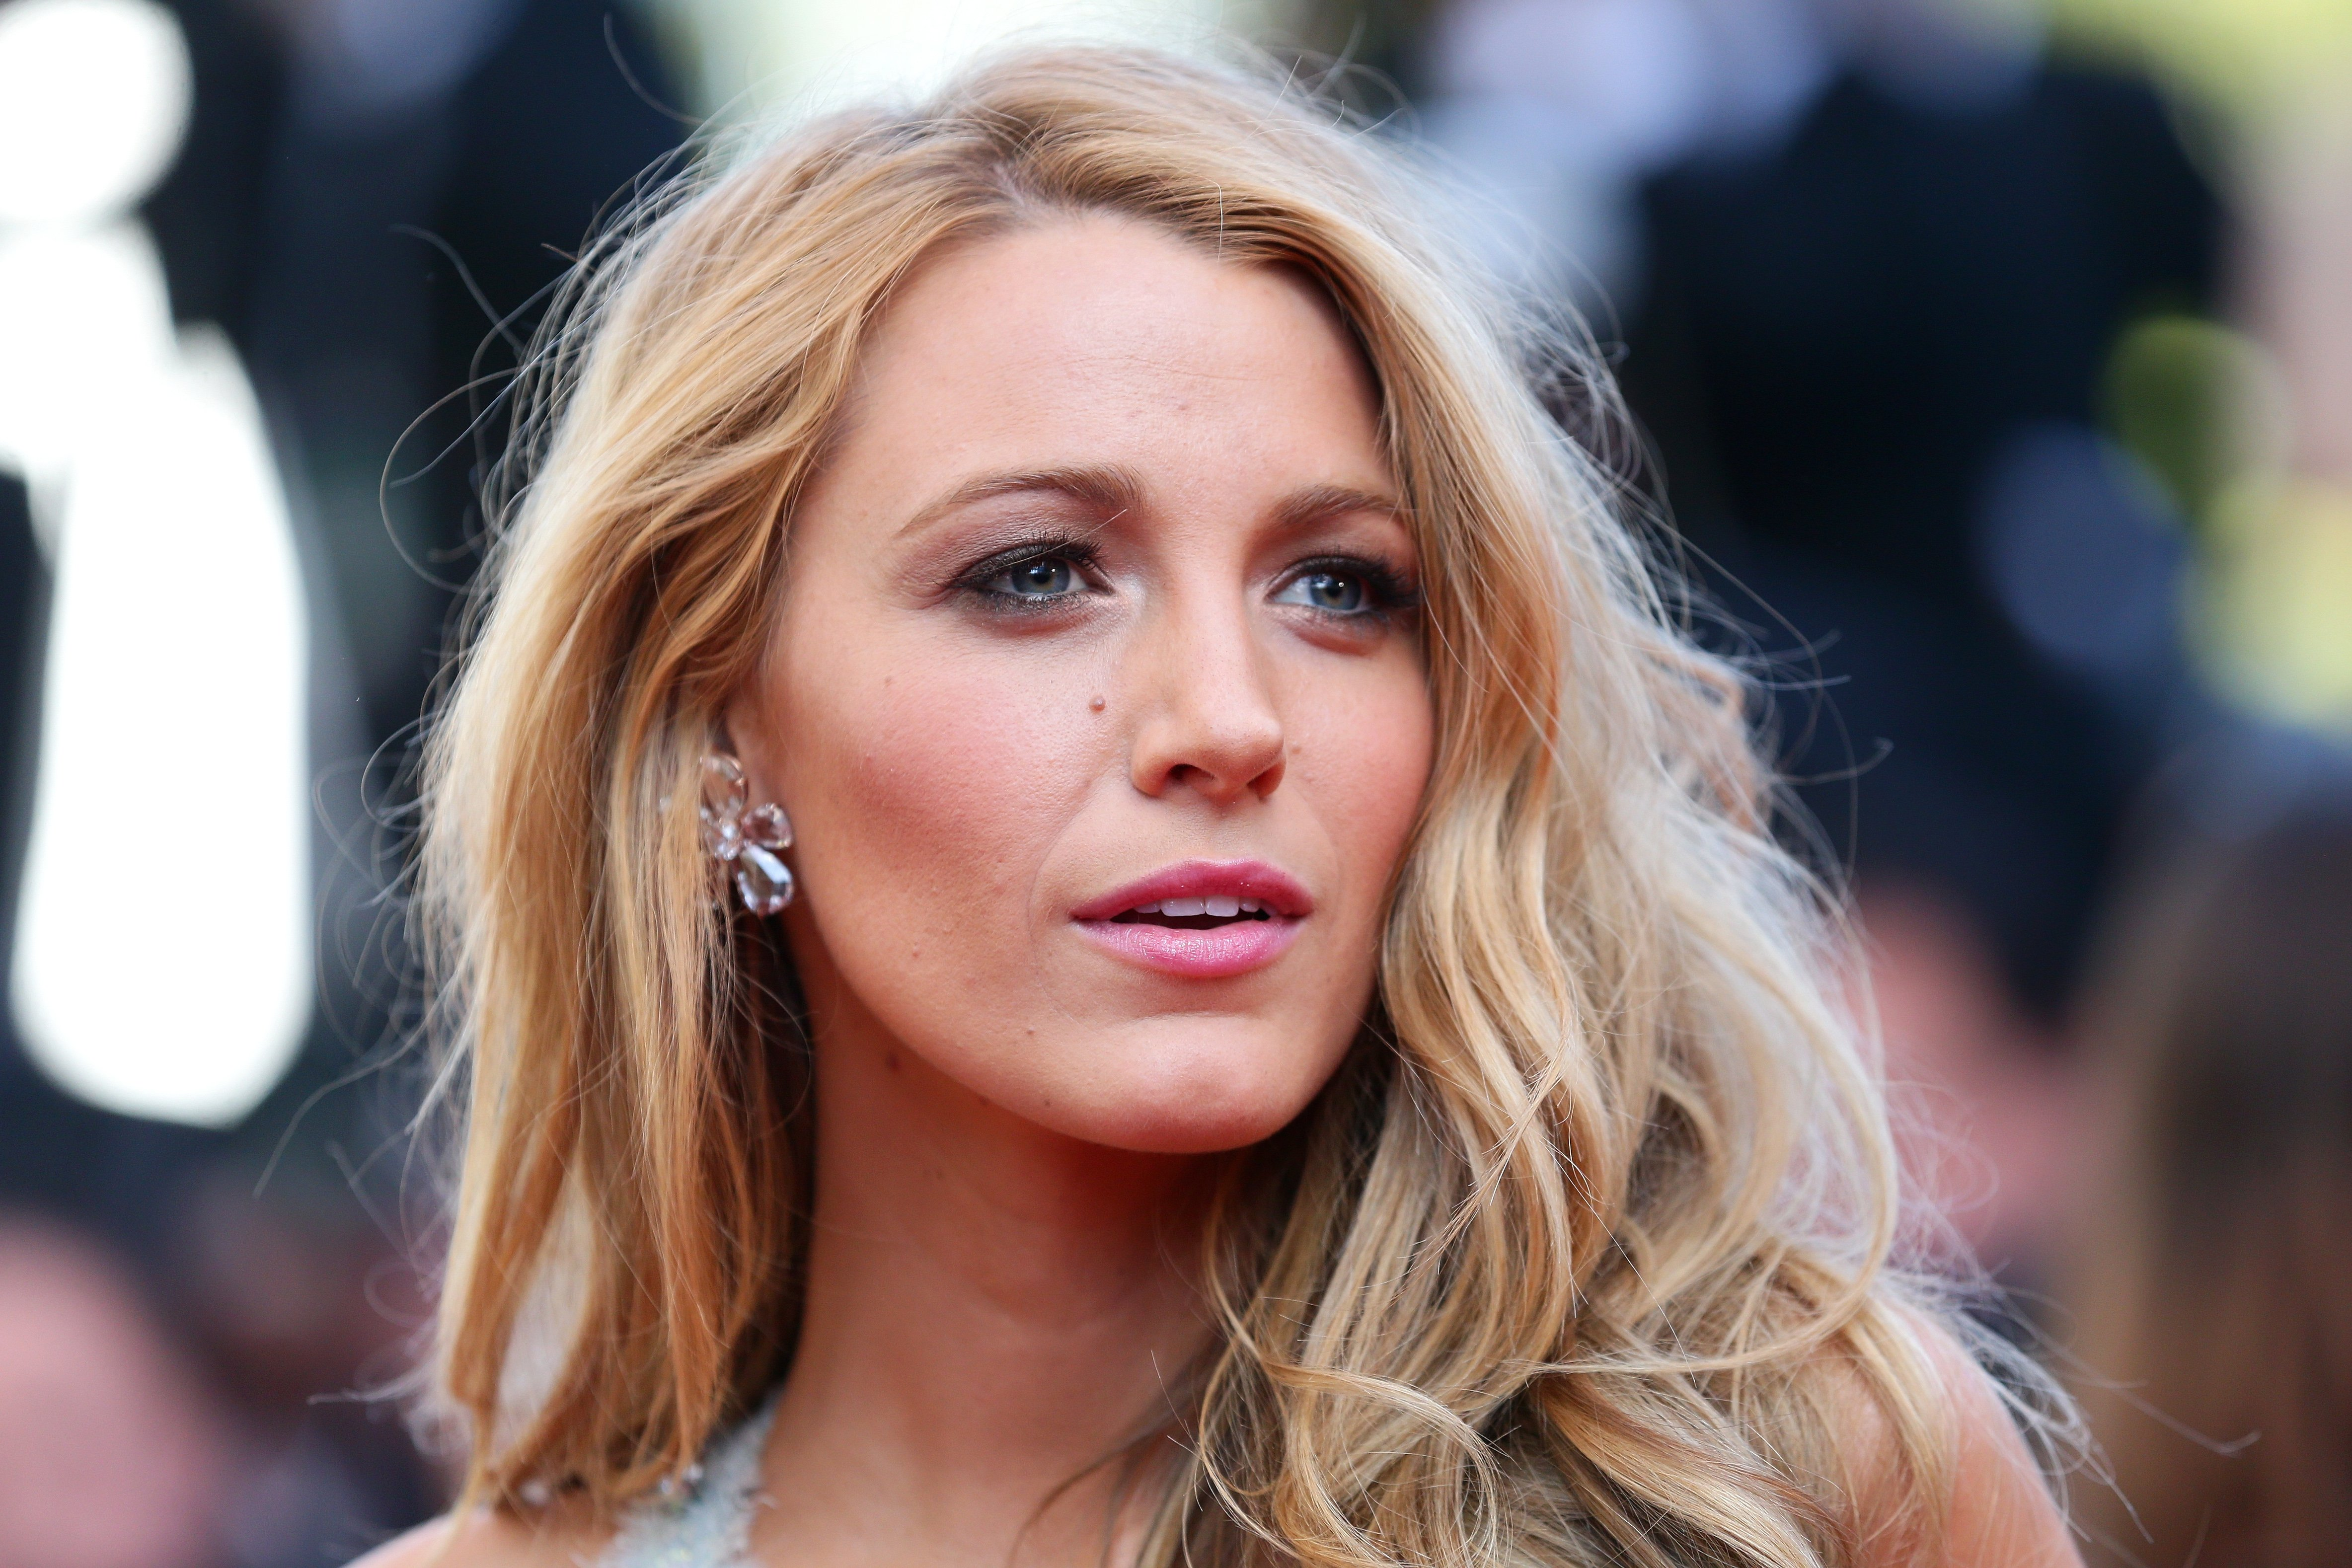 """Gossip Girl"" star Blake Lively attends the ""Mr. Turner"" premiere during the 2014 Annual Cannes Film Festival in France. 